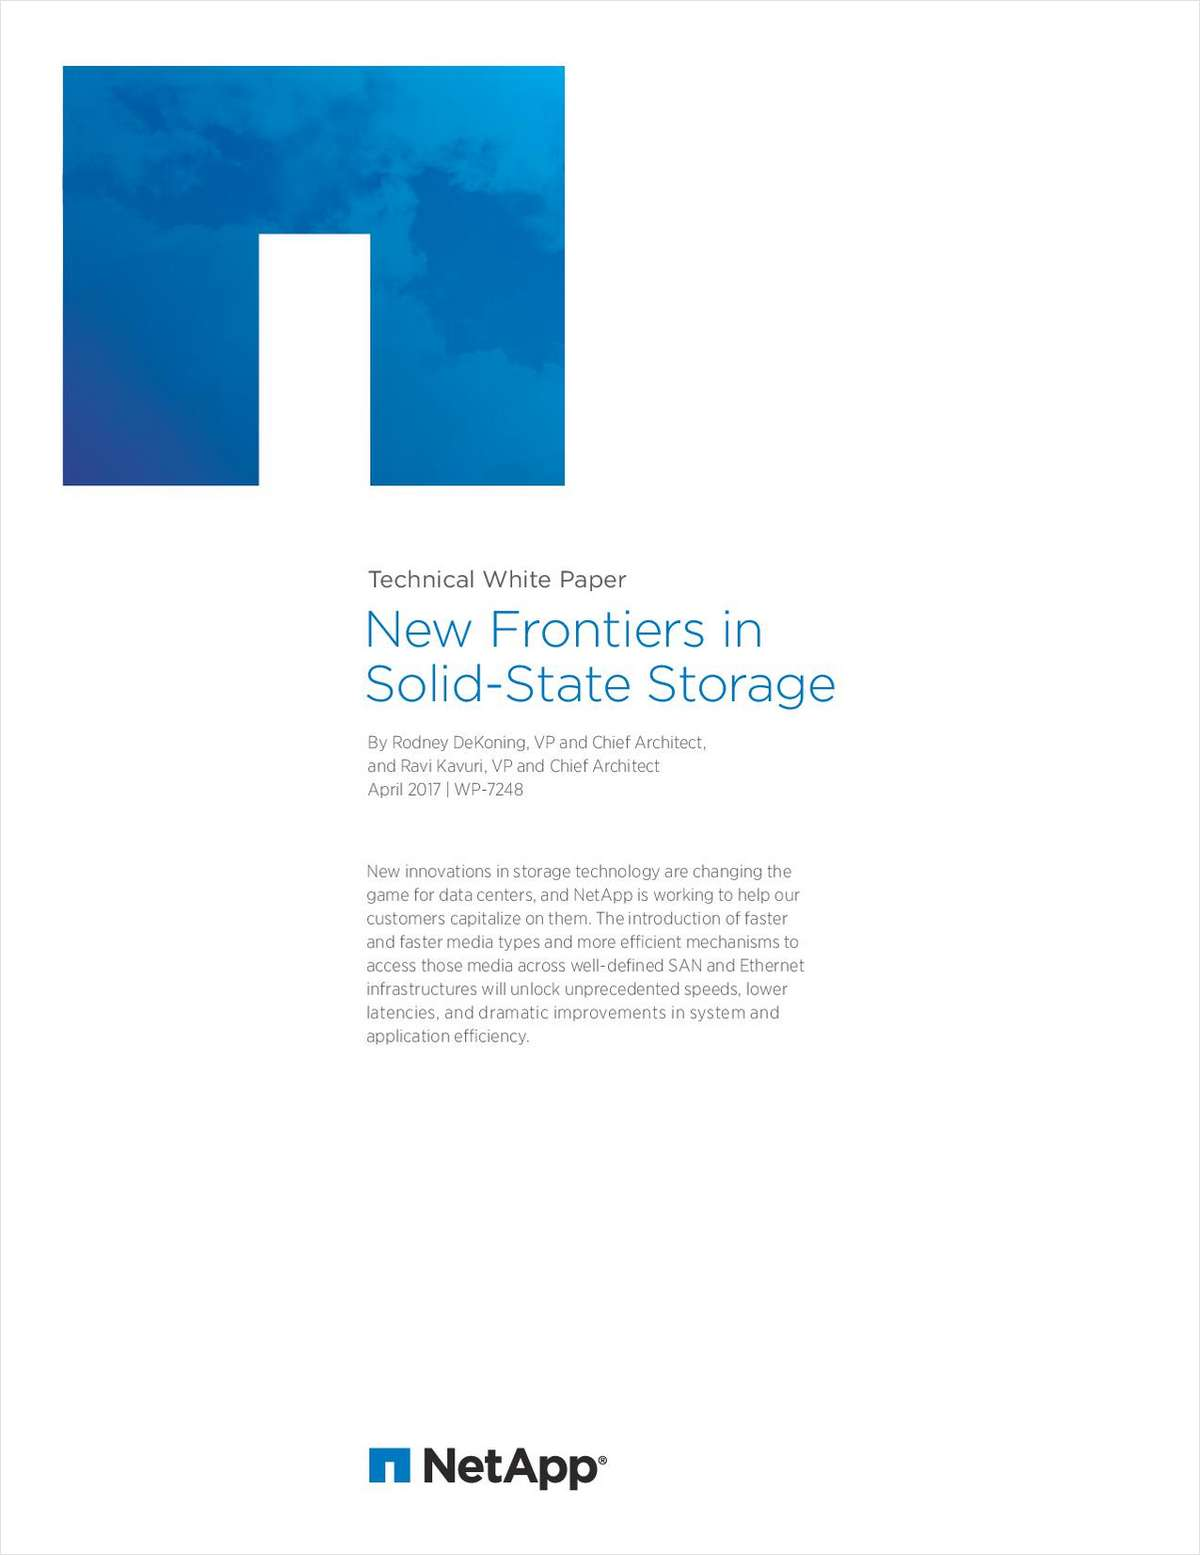 New Frontiers in Solid-State Storage